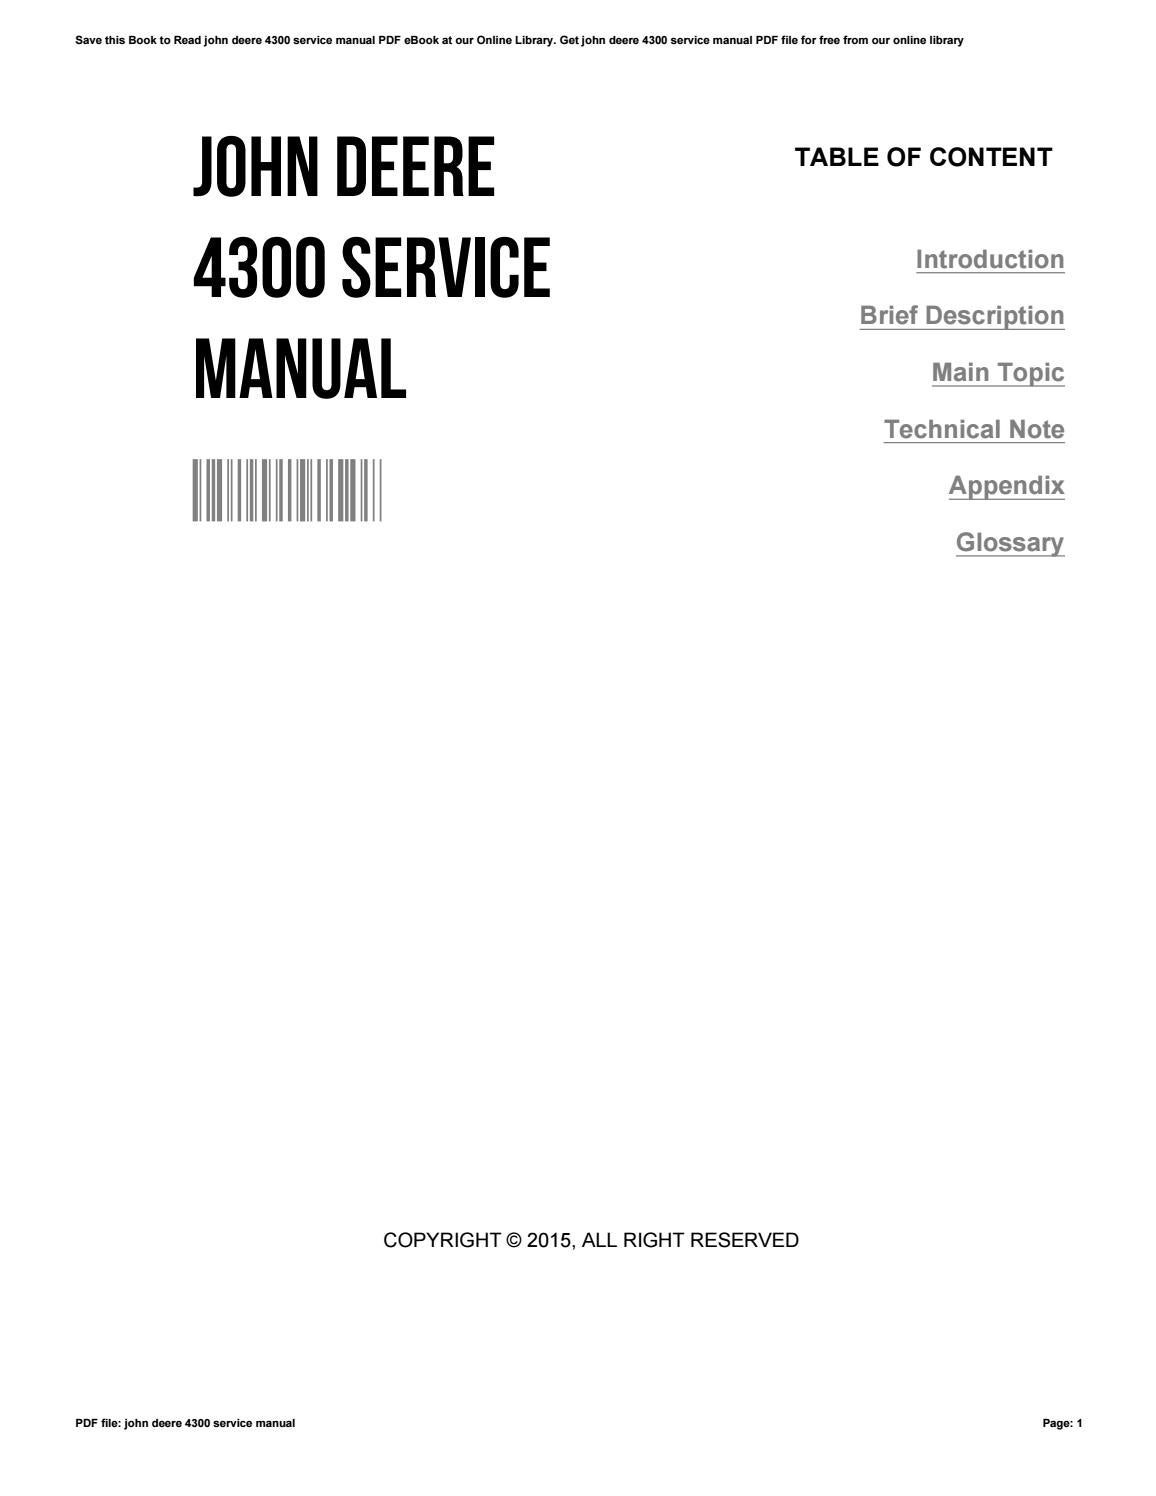 John deere 4300 service manual by ScottKillingsworth3930